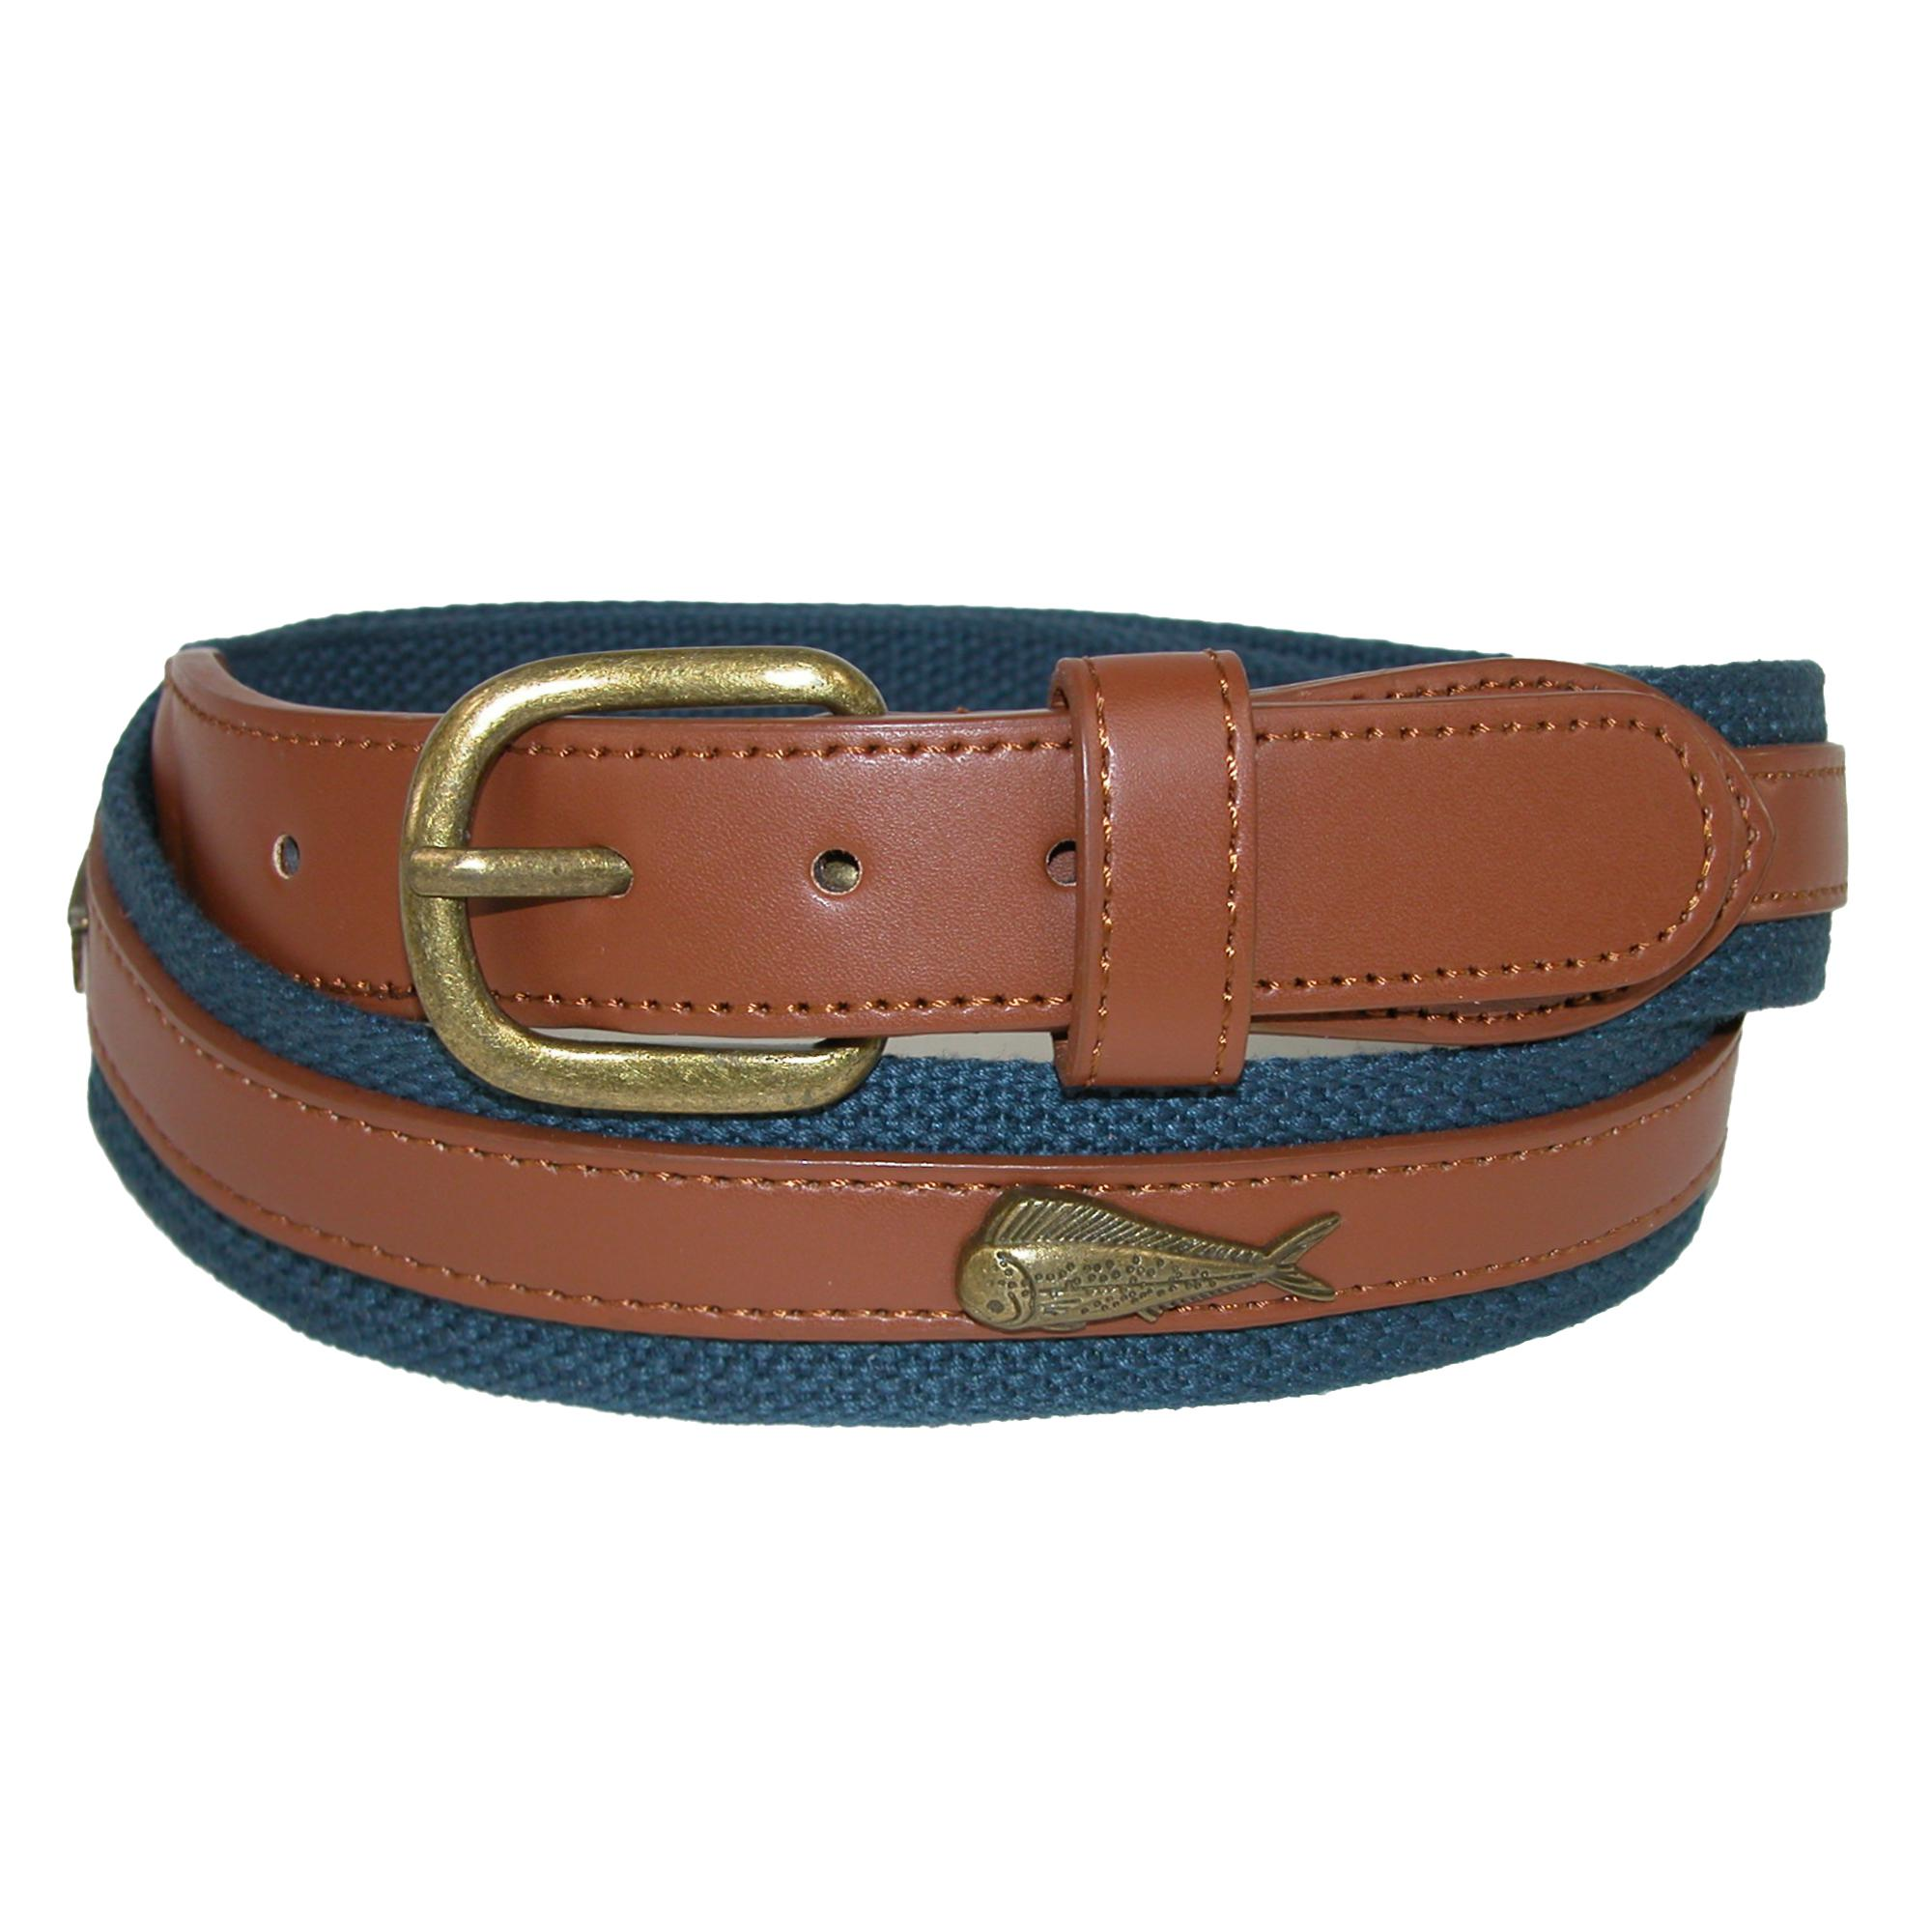 Ctm Mens Fabric Belt With Ribbon Overlay And Fish Conchos